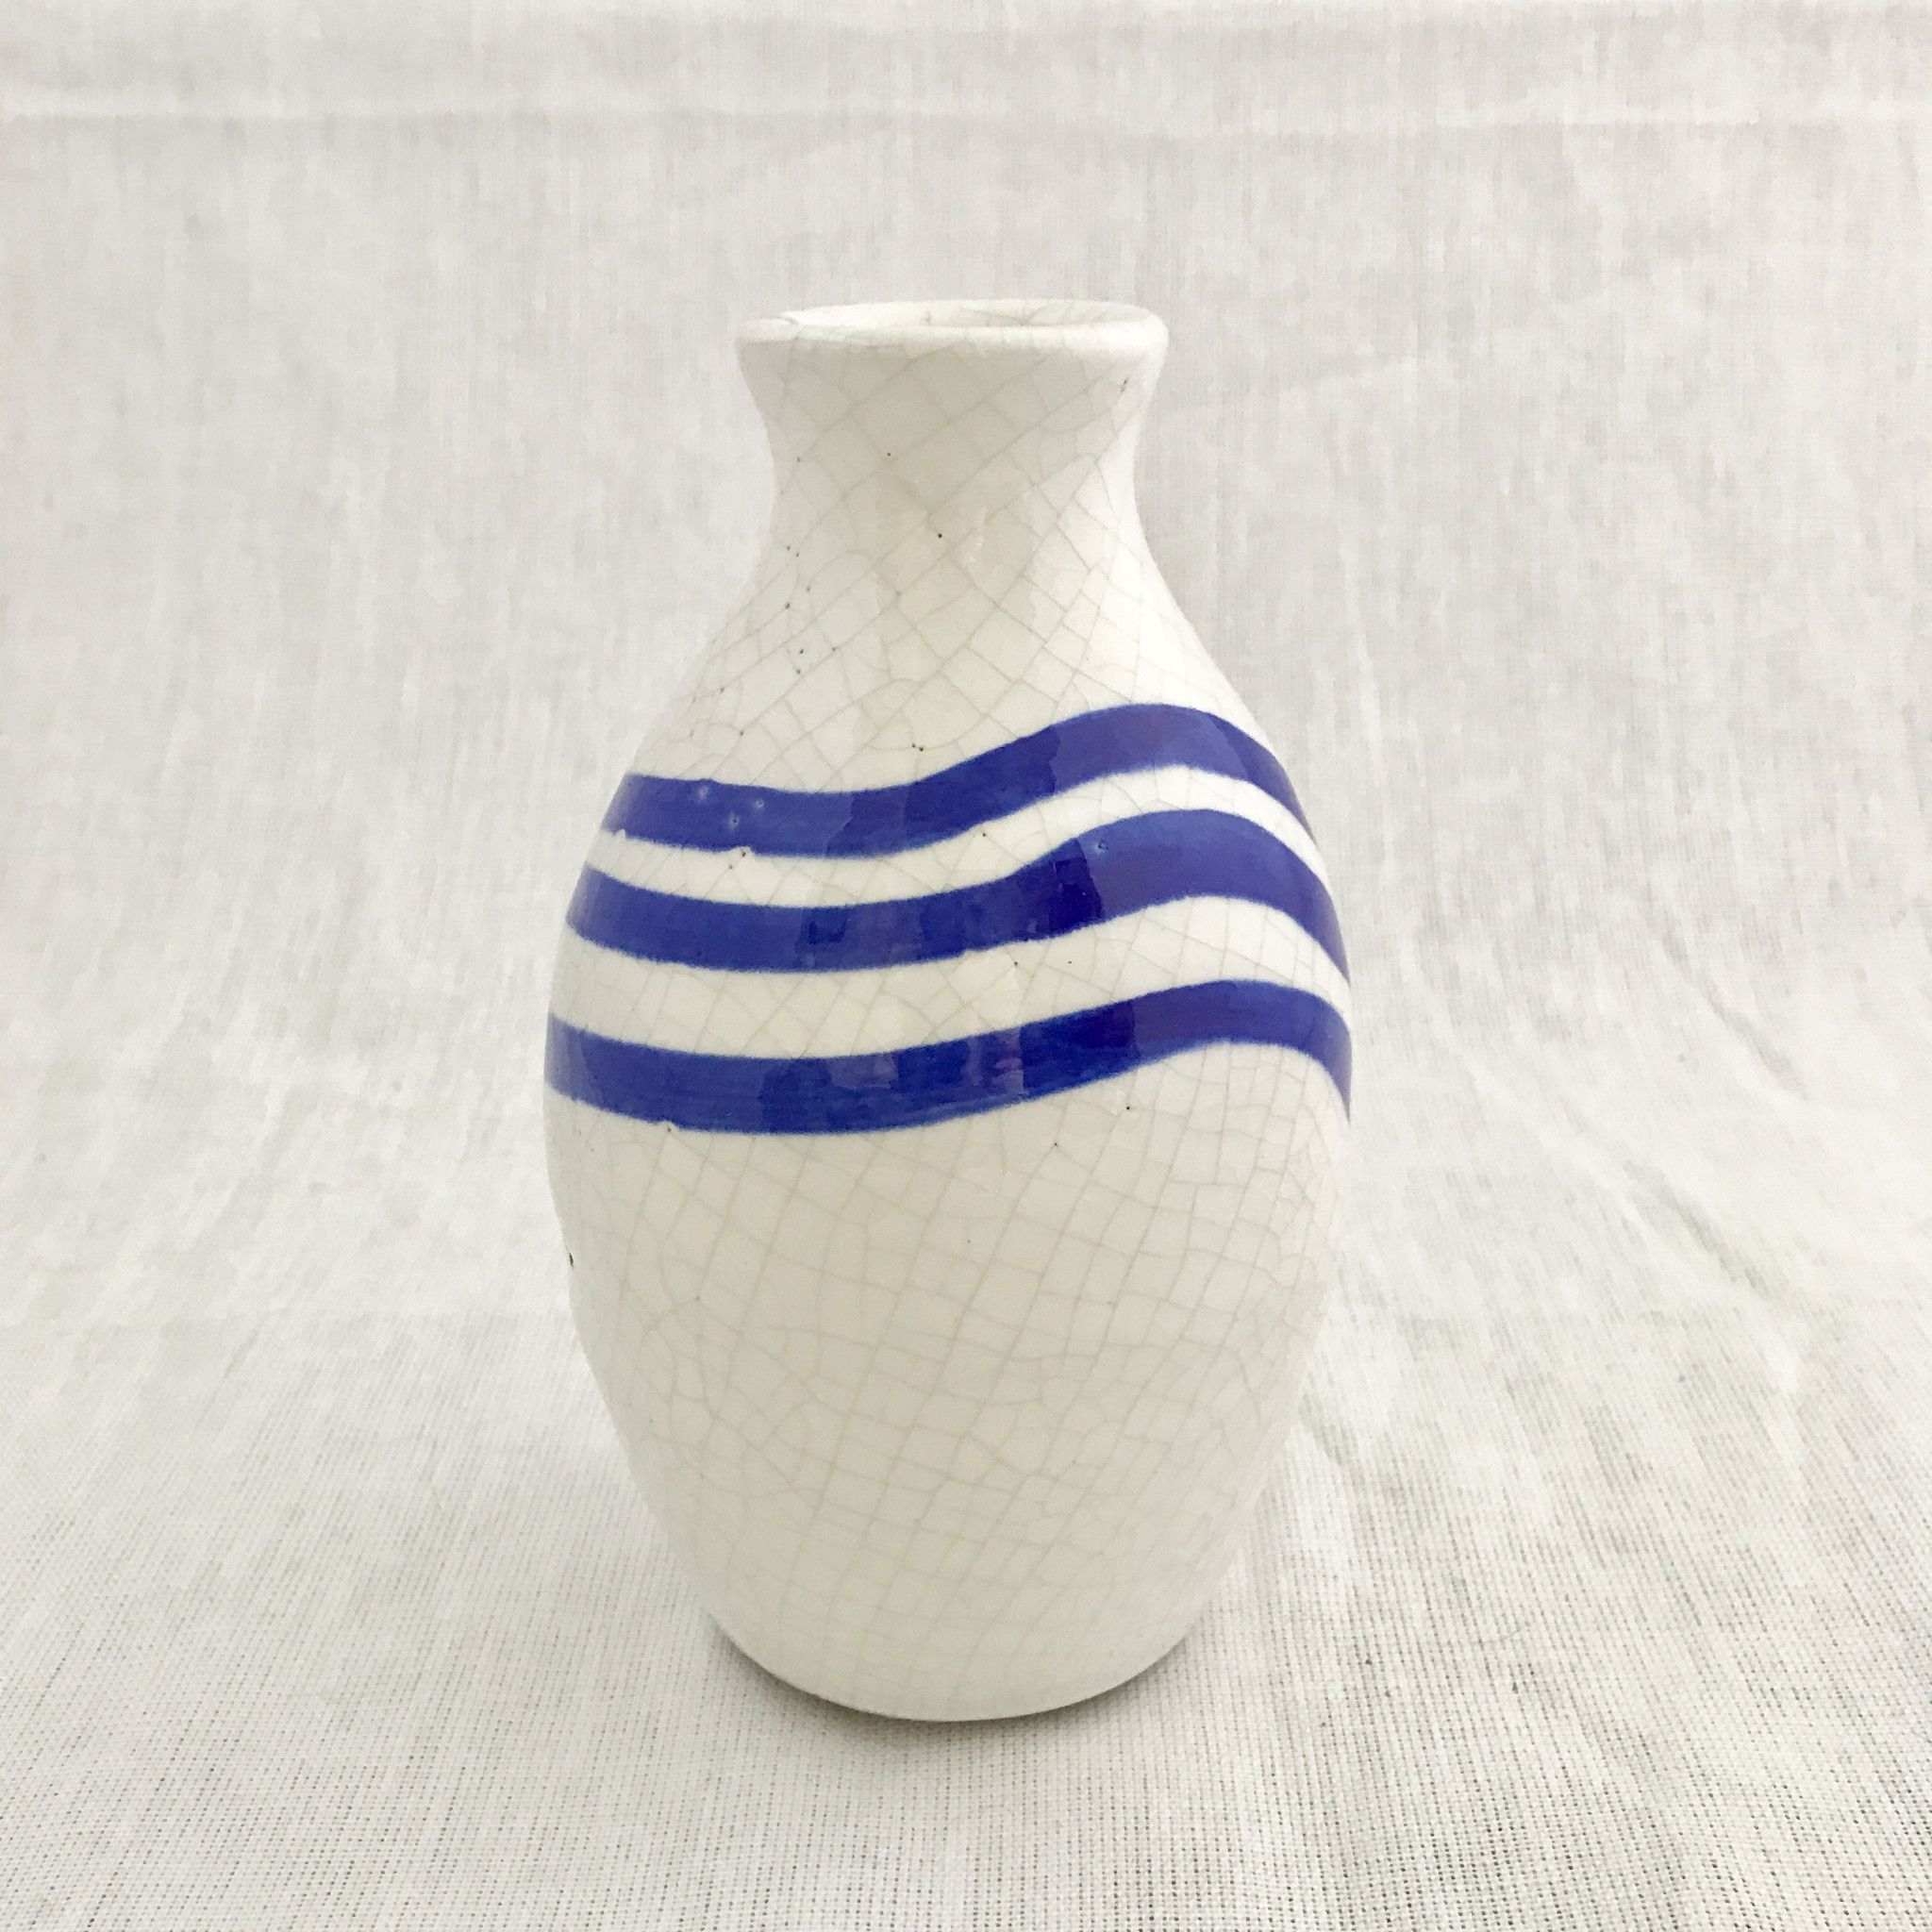 Blue Striped Clay Vases - Set of 4